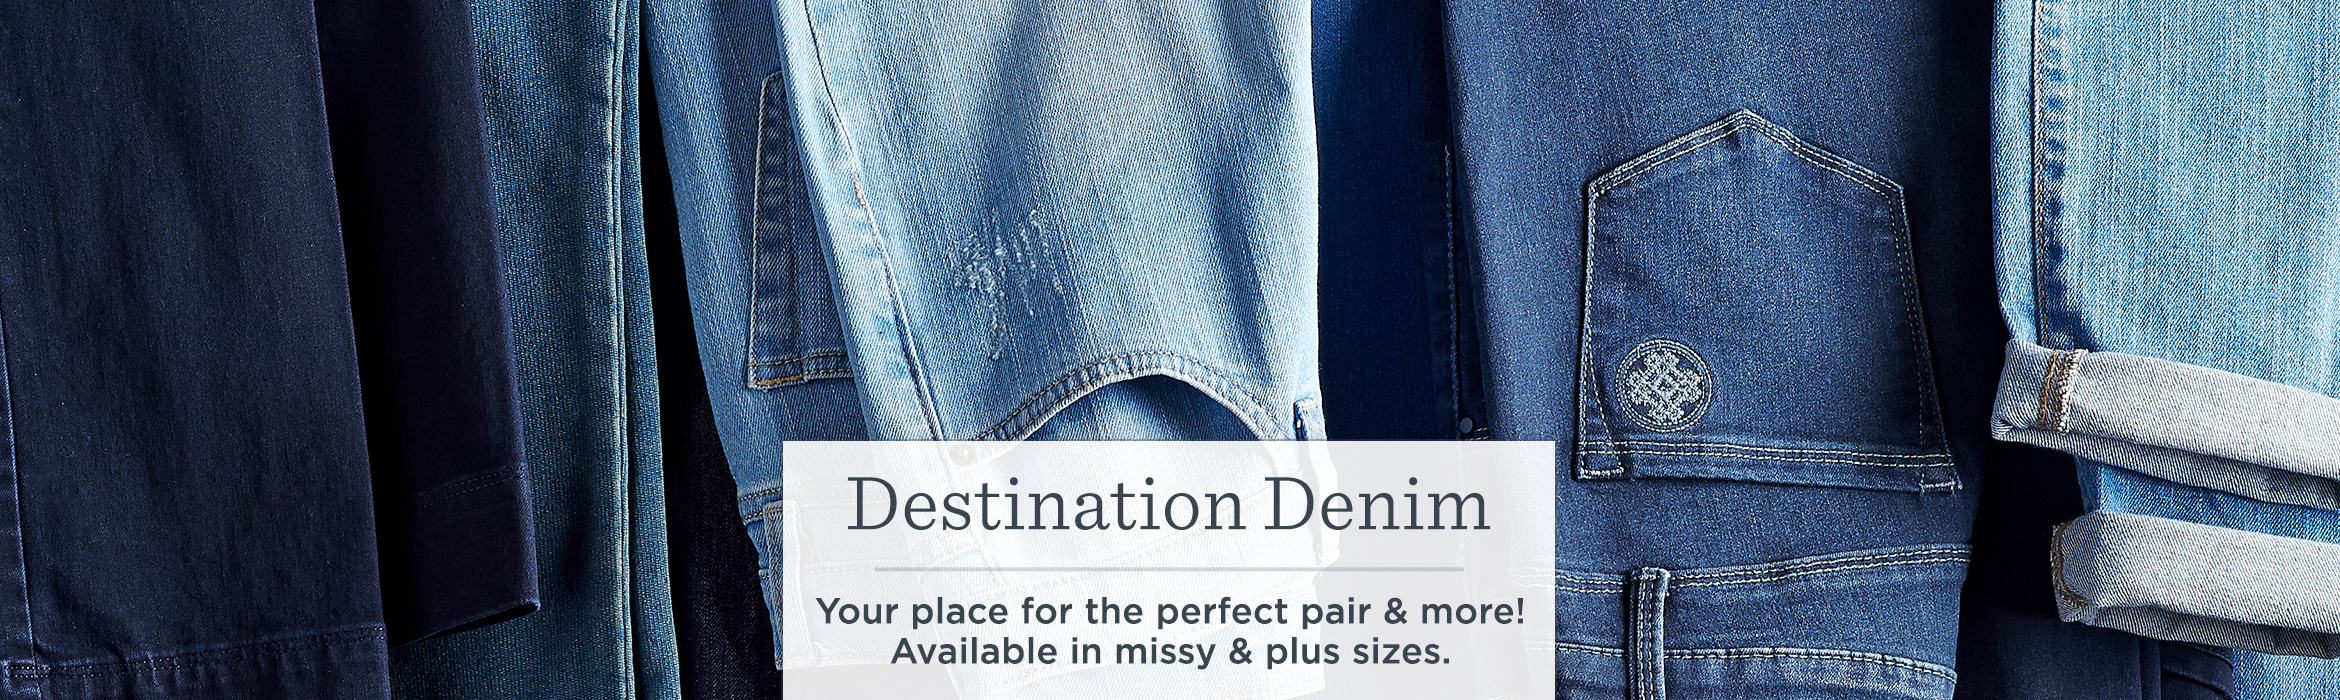 Destination Denim  Your place for the perfect pair & more! Available in missy & plus sizes.